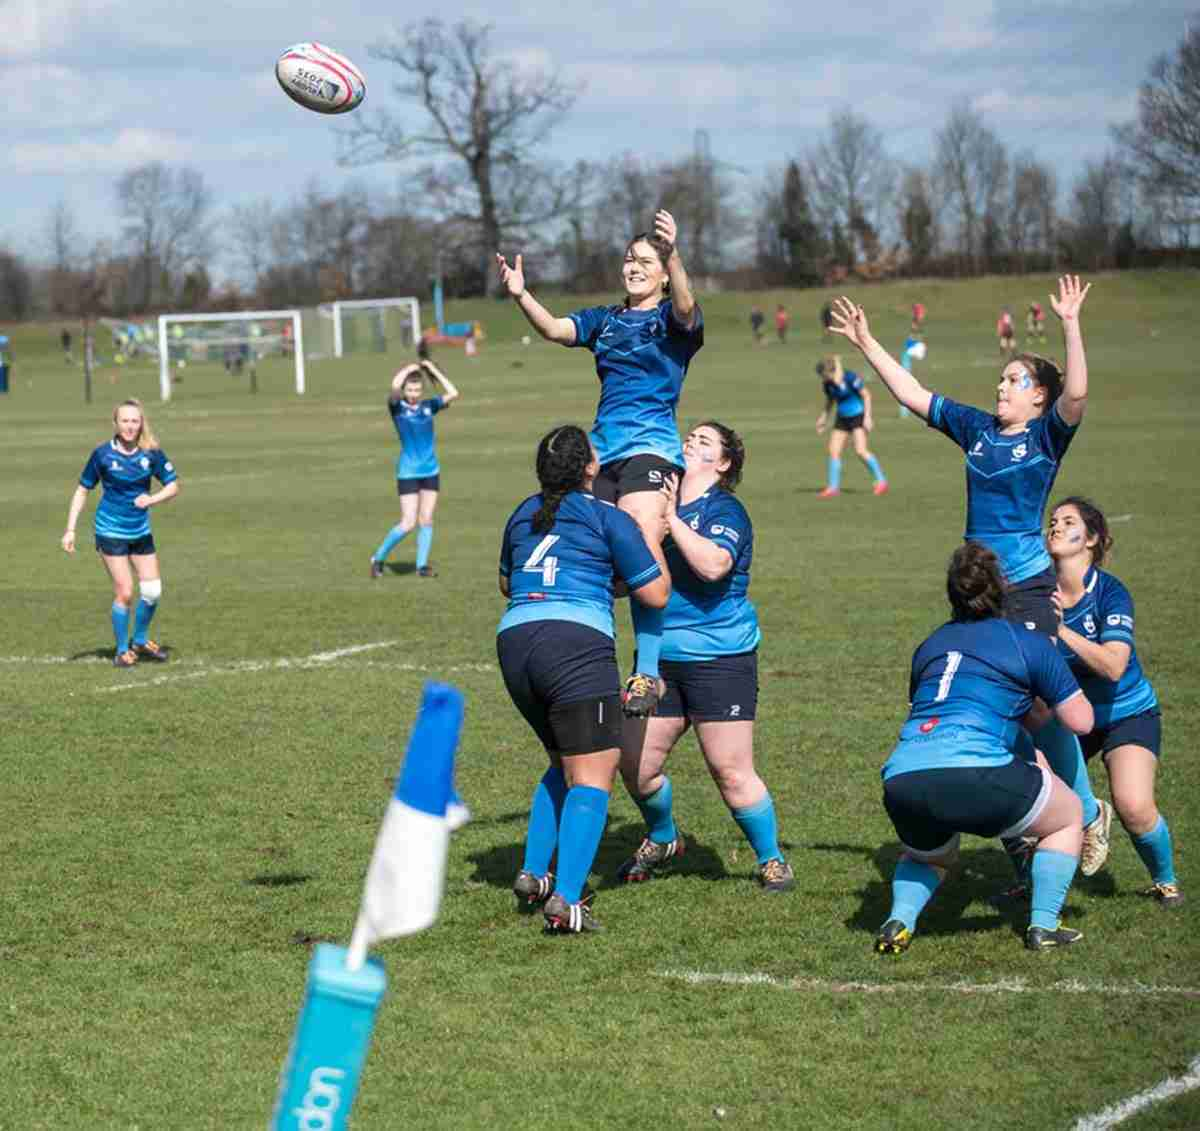 KU women's rugby perming a line-out